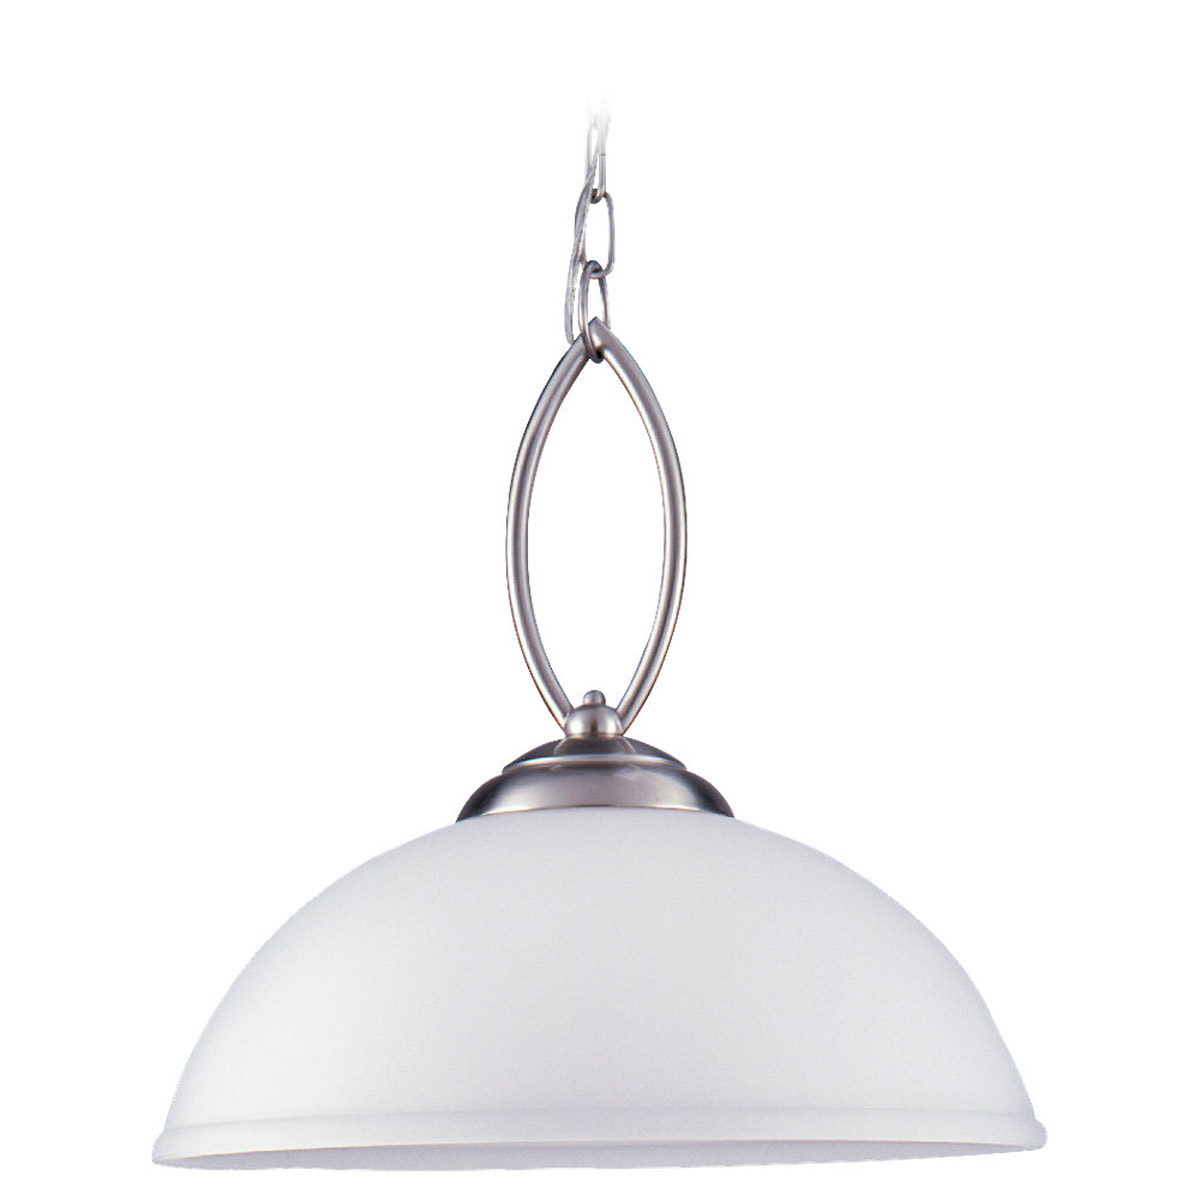 Sea Gull Lighting Pemberton 1 Light Pendant in Brushed Nickel 65074-962